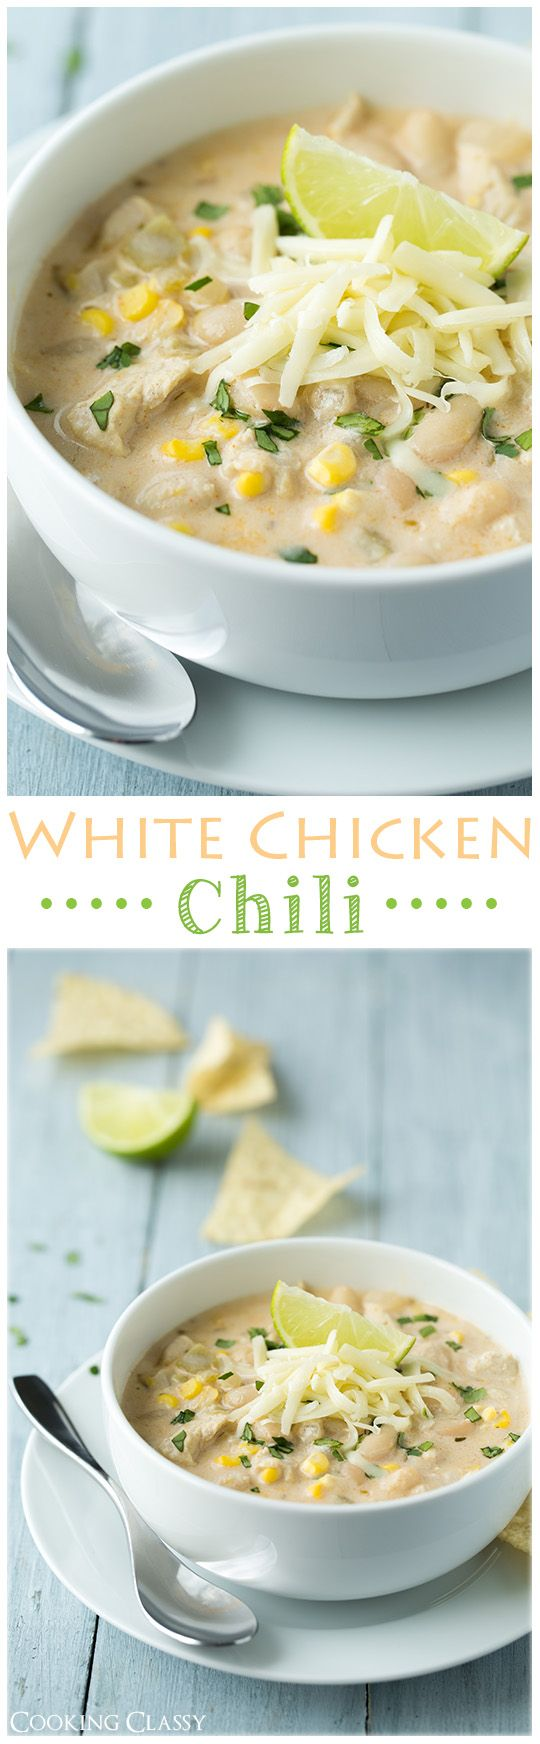 White Chicken Chili - it's creamy and incredibly delicious!! #recipe #chicken